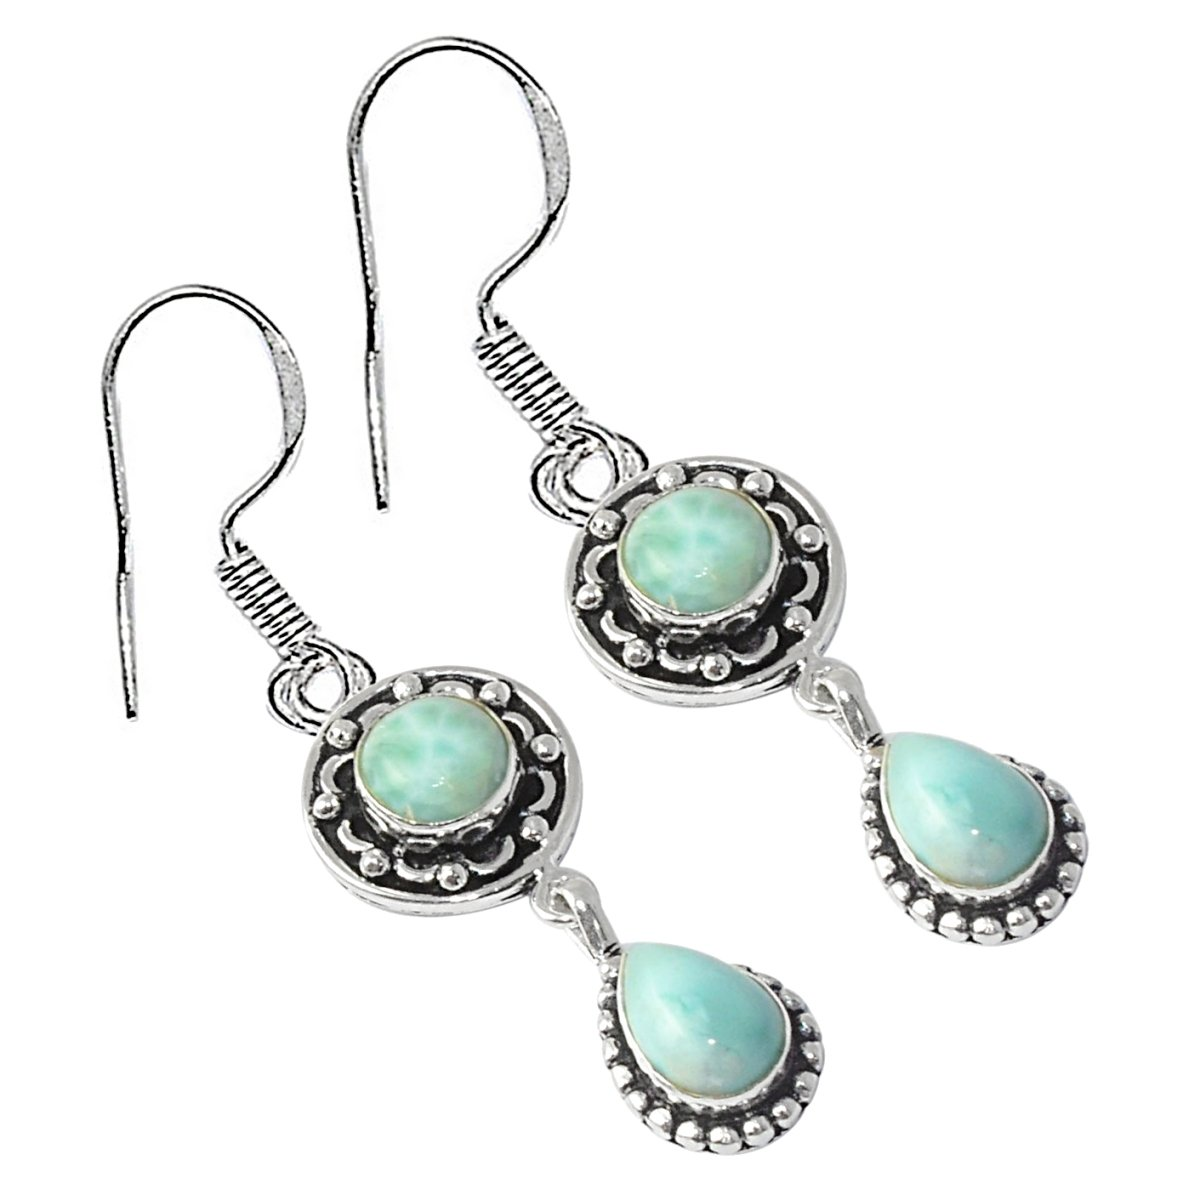 Earring Genuine Cabochon Larimar 925 Silver Plated High Polished